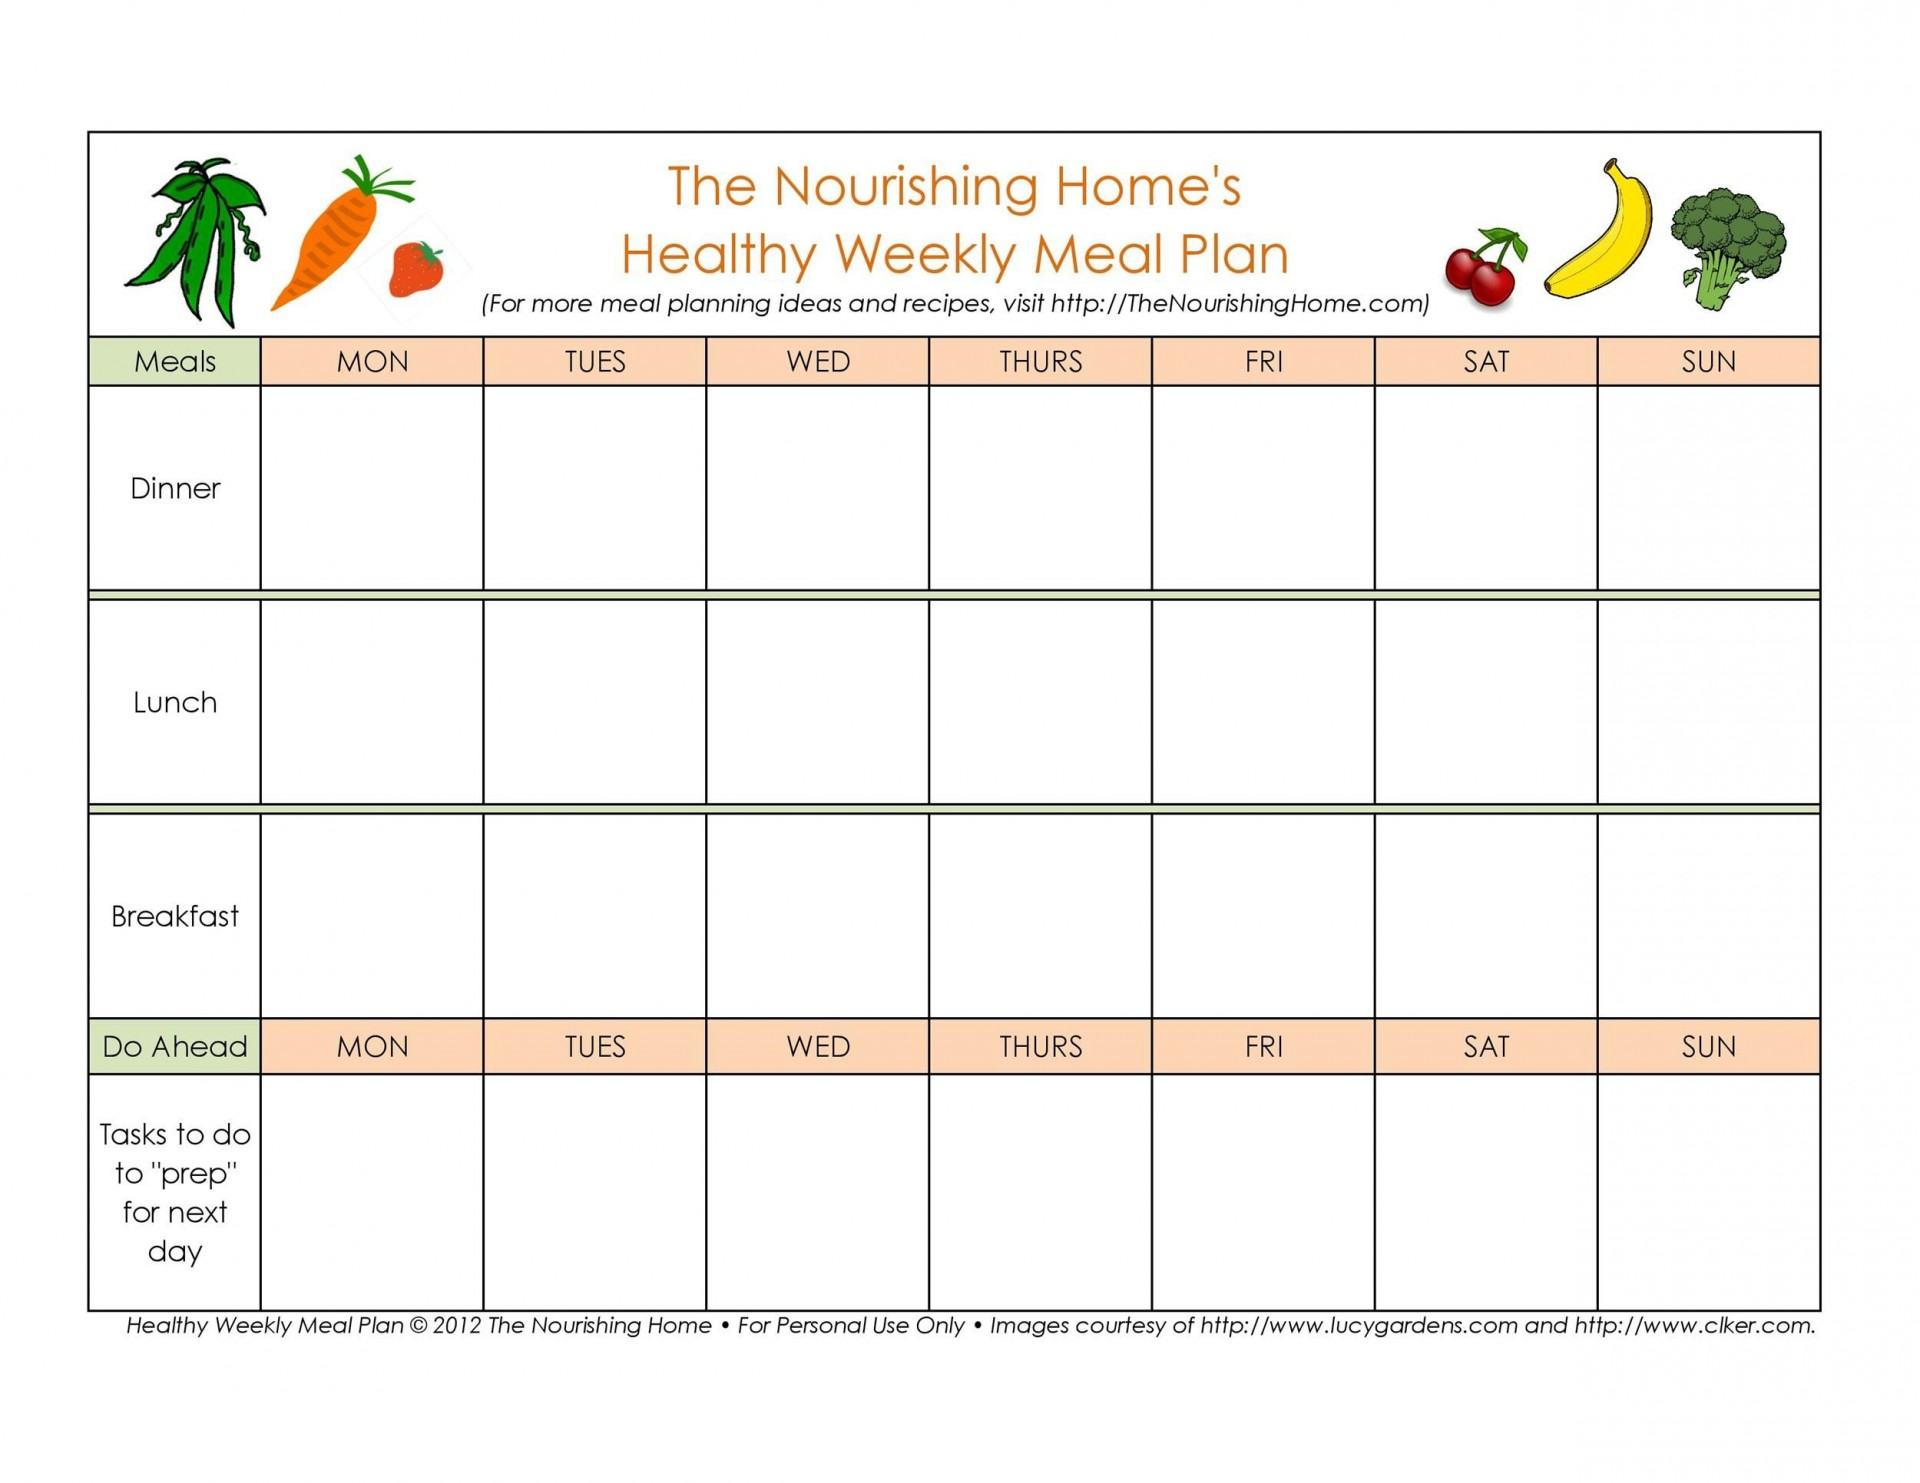 005 Surprising Free Meal Planner Template For Weight Los Picture  Loss1920